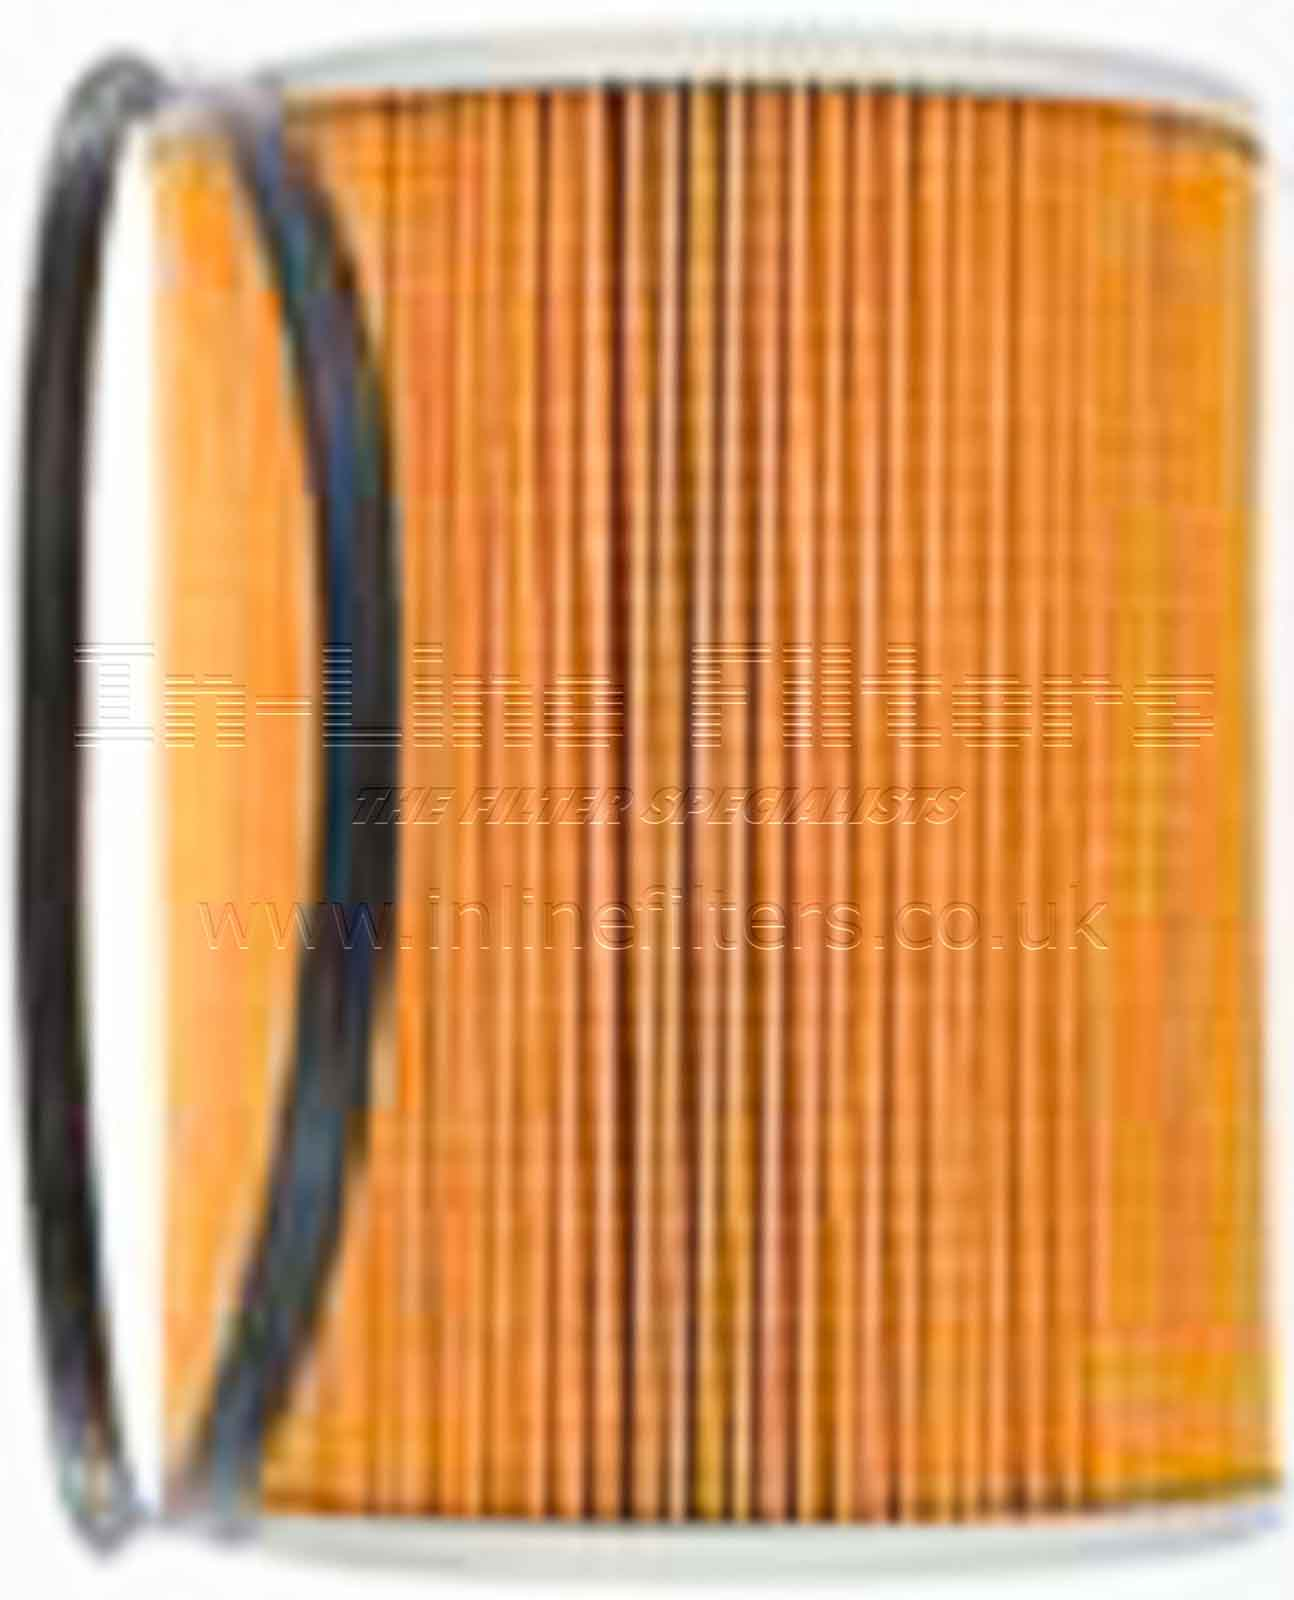 FFG-FF5071 FILTER-Fuel(Brand Specific-Fleetguard FF5071) - Click Image to Close